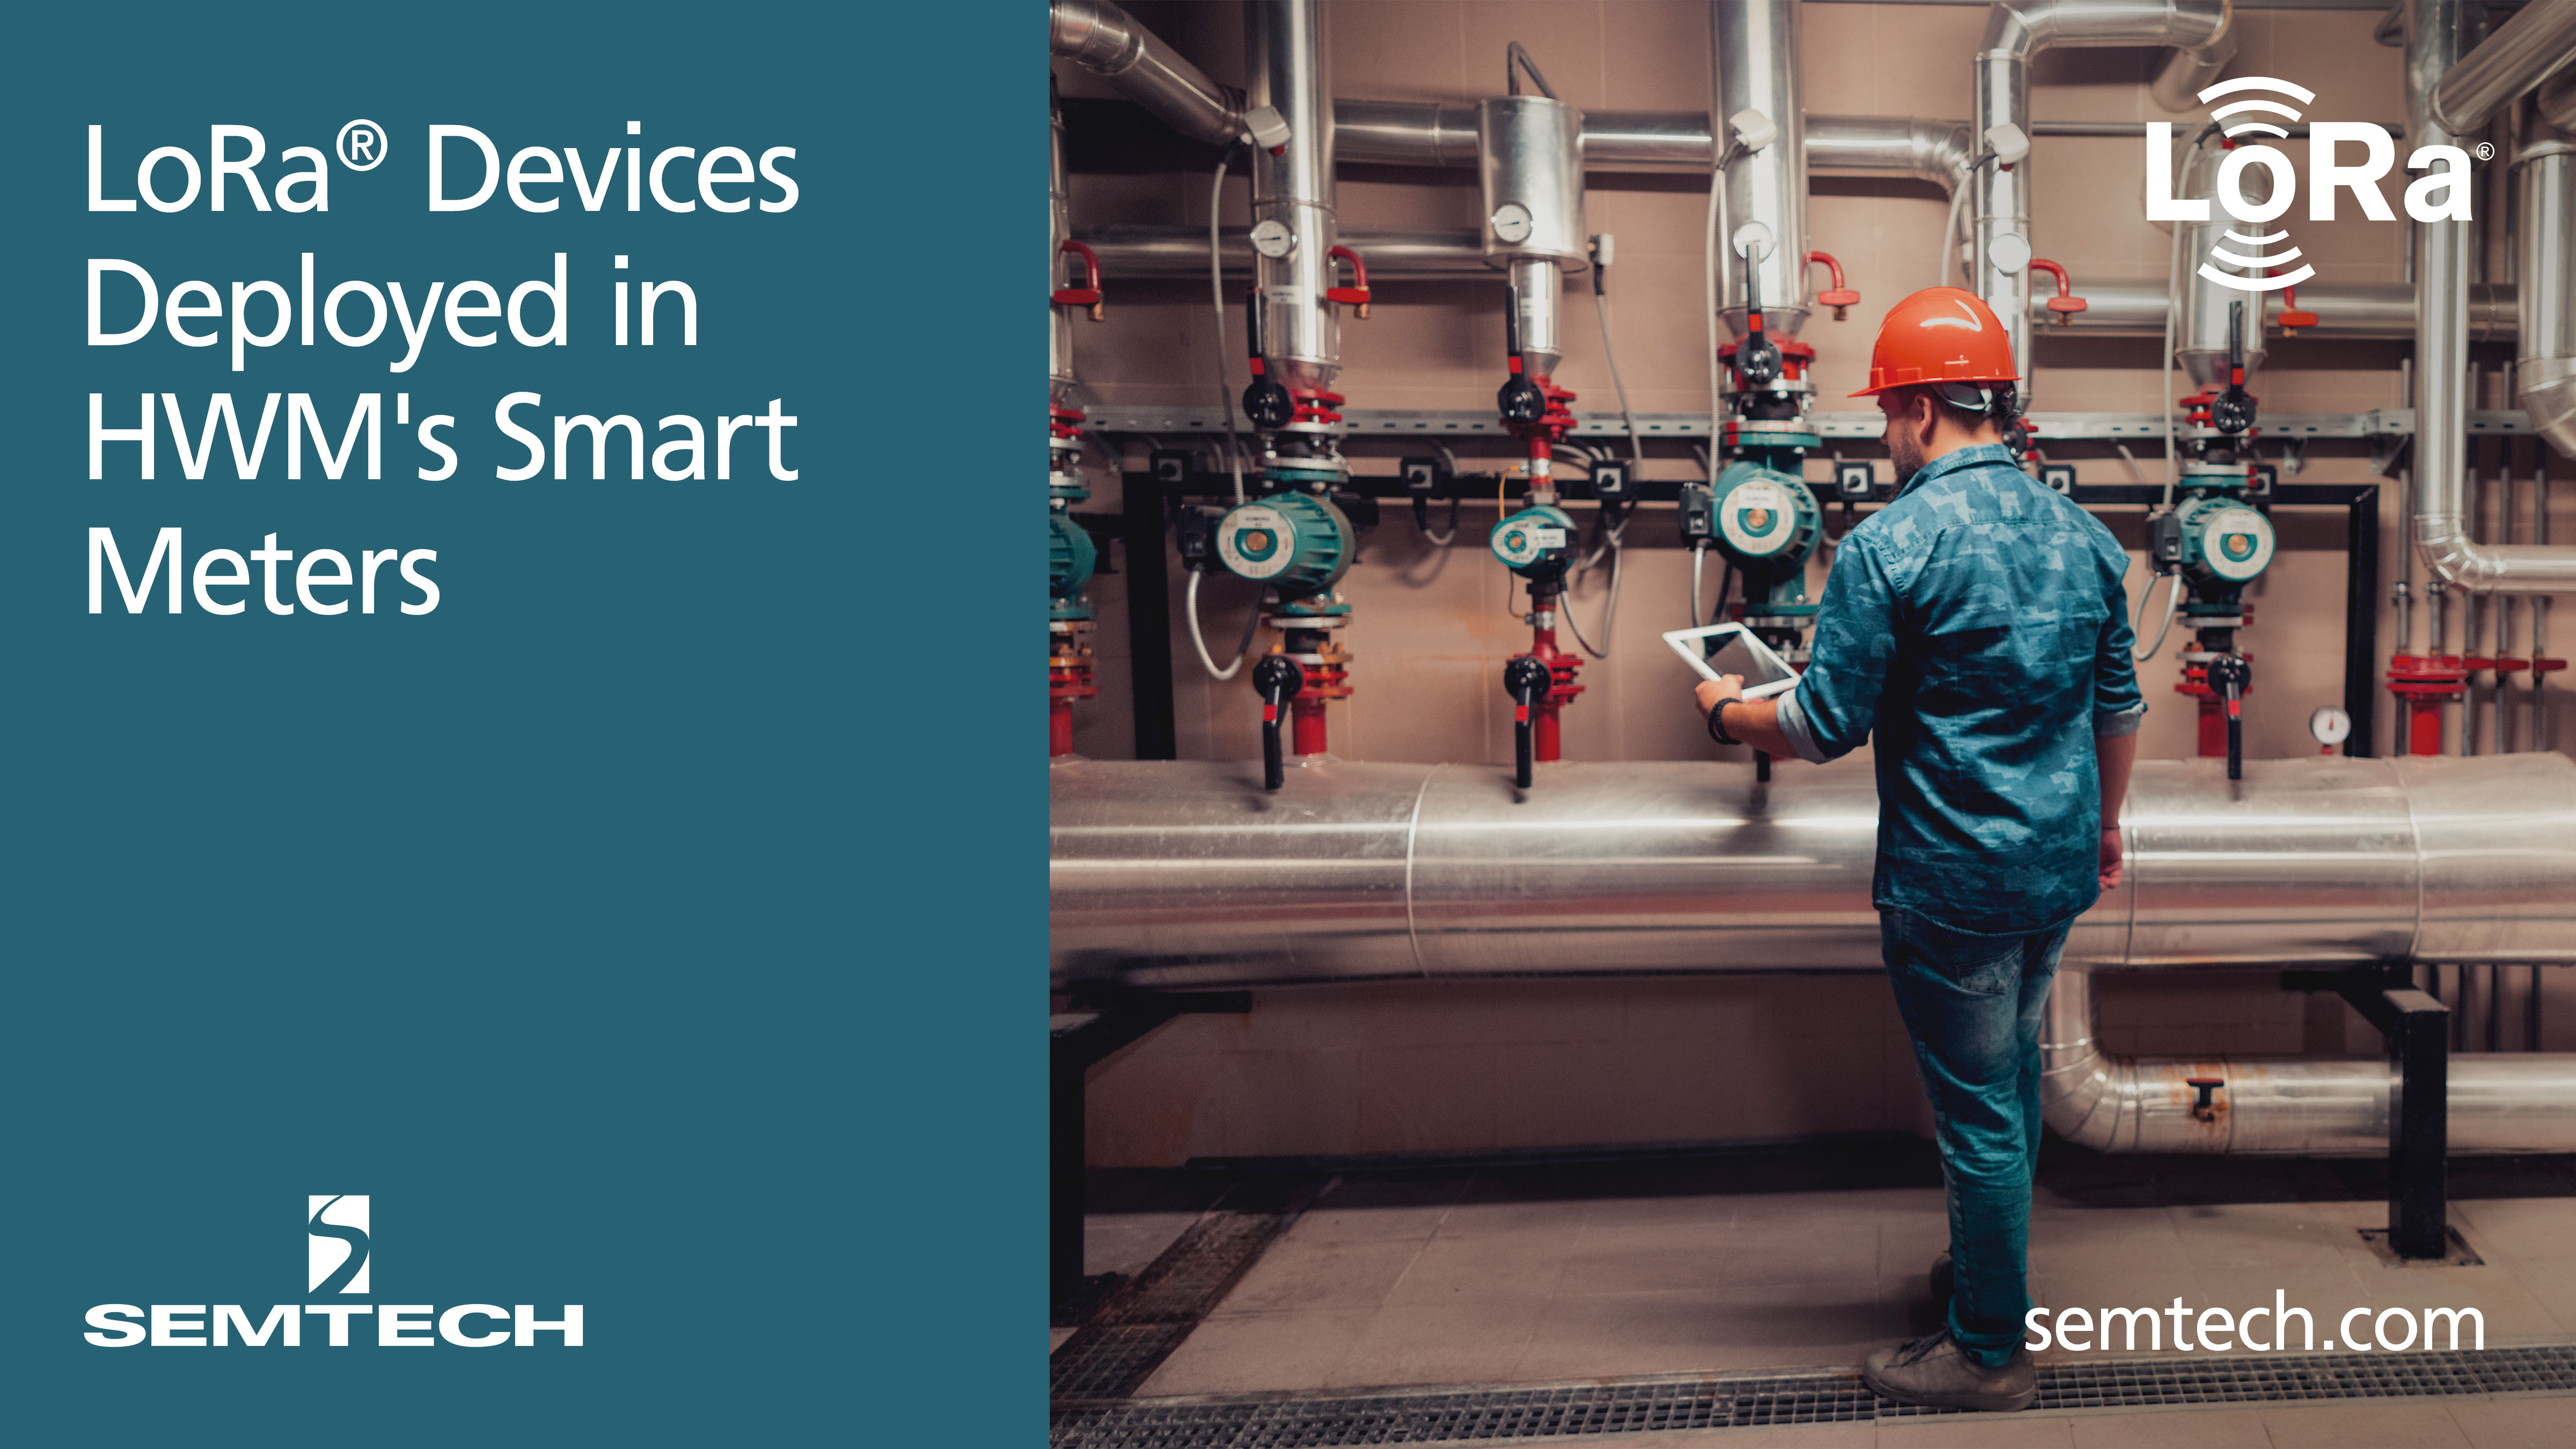 Semtech's LoRa Devices Successfully Deployed in HWM's Water Meter